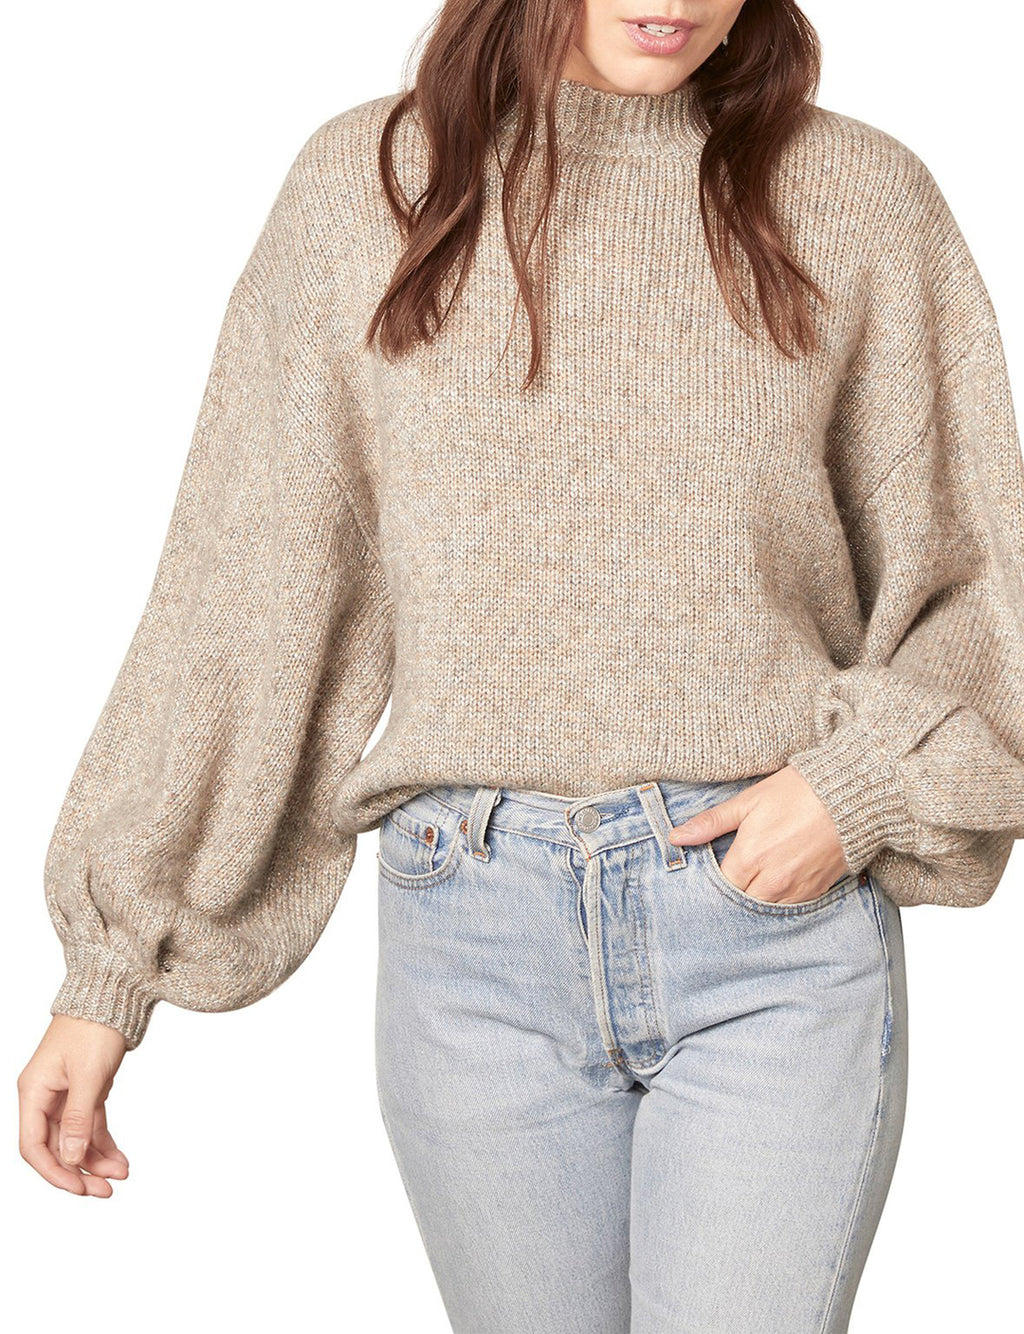 Tried To Warm You Sweater in Heather Grey